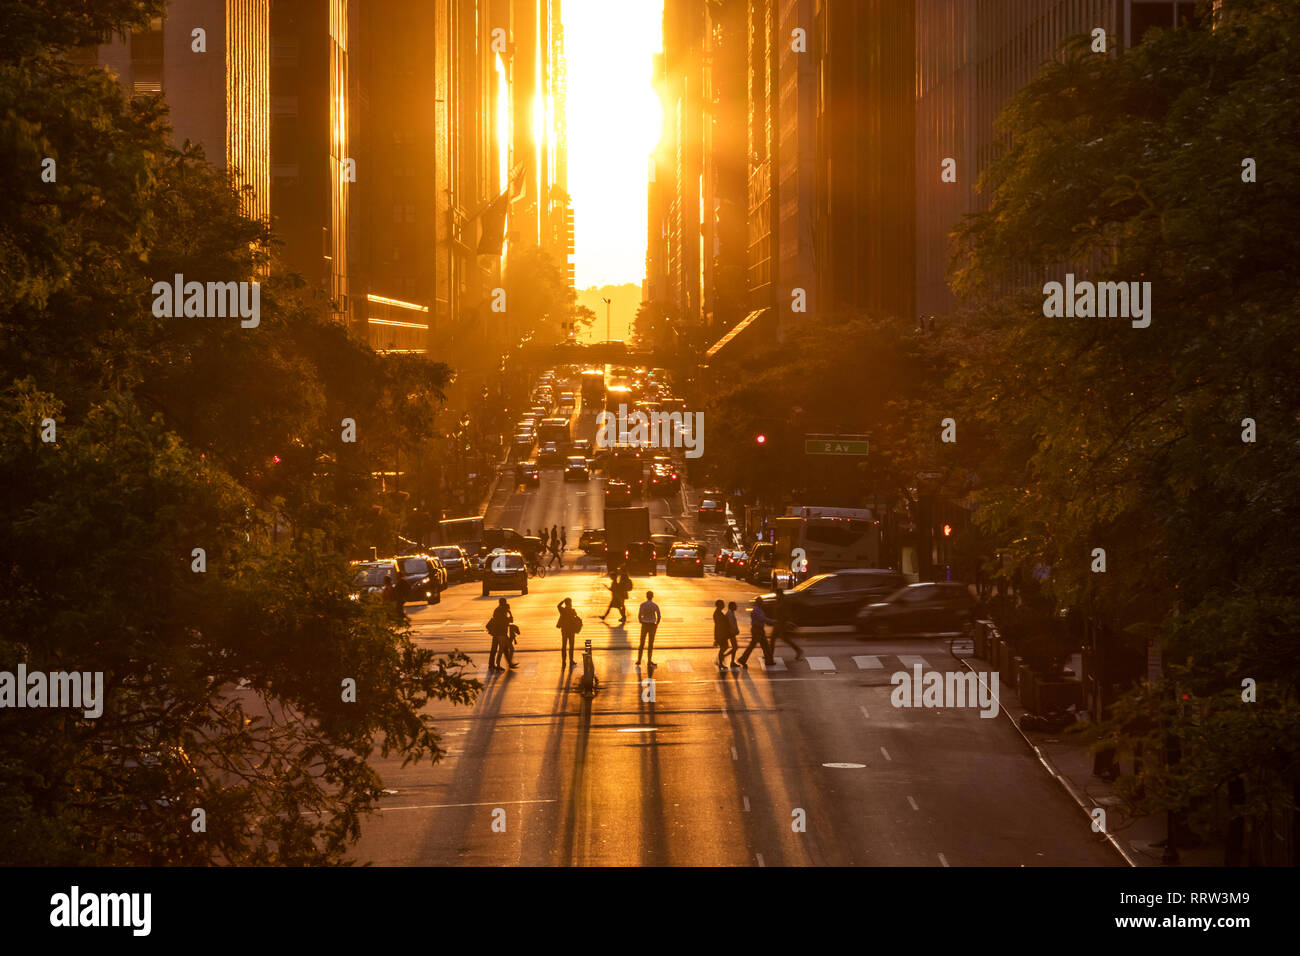 Rays of sunlight shining down on the people and traffic at the intersections along 42nd Street through Midtown Manhattan in New York City Stock Photo